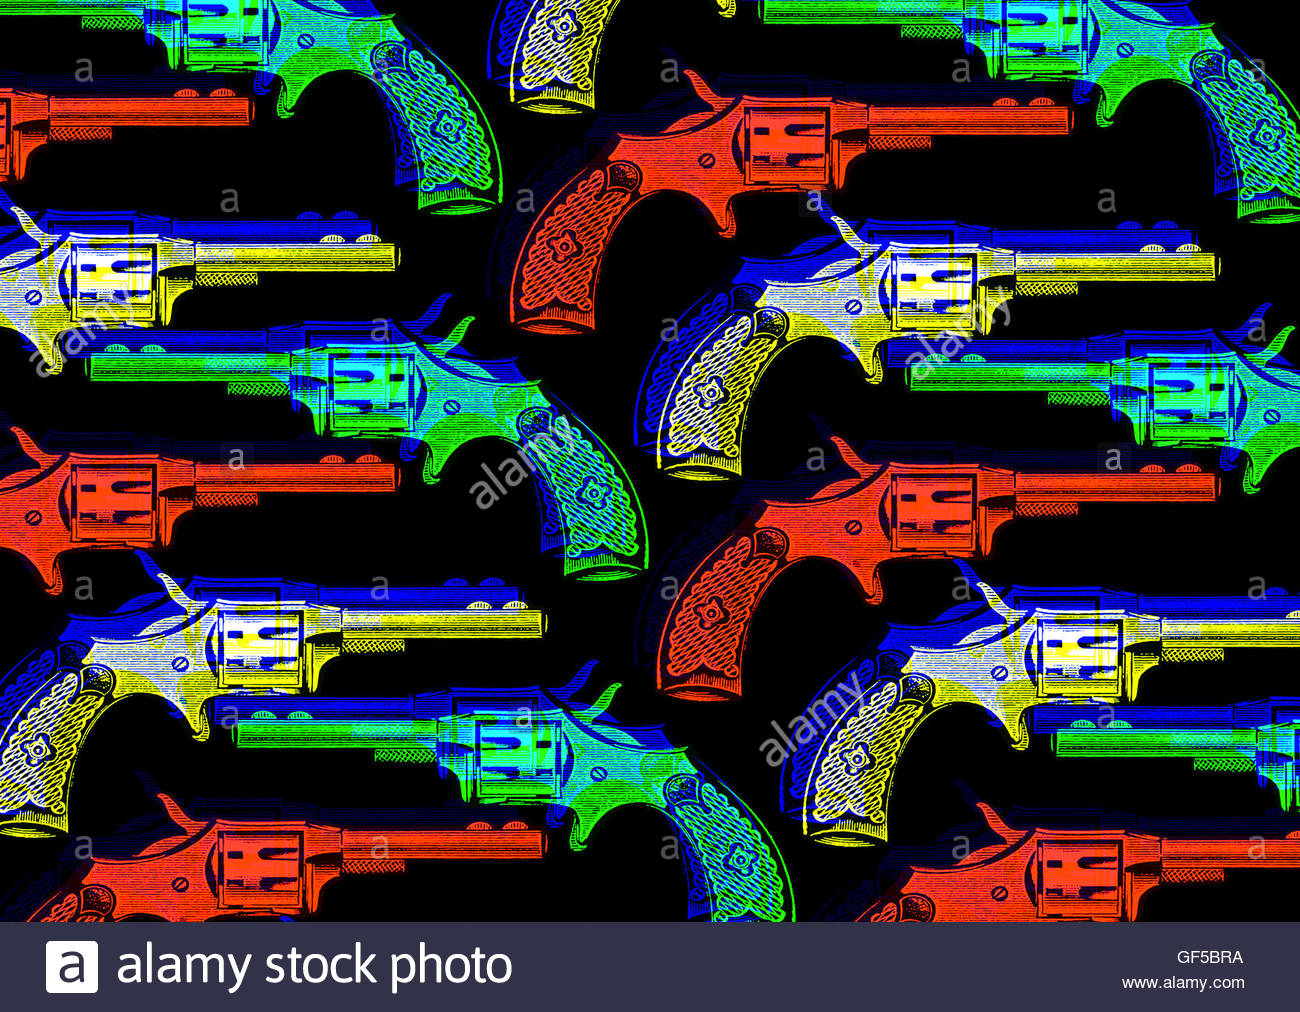 Revolver wild west hand gun retro repeat vintage illustration - Stock Image